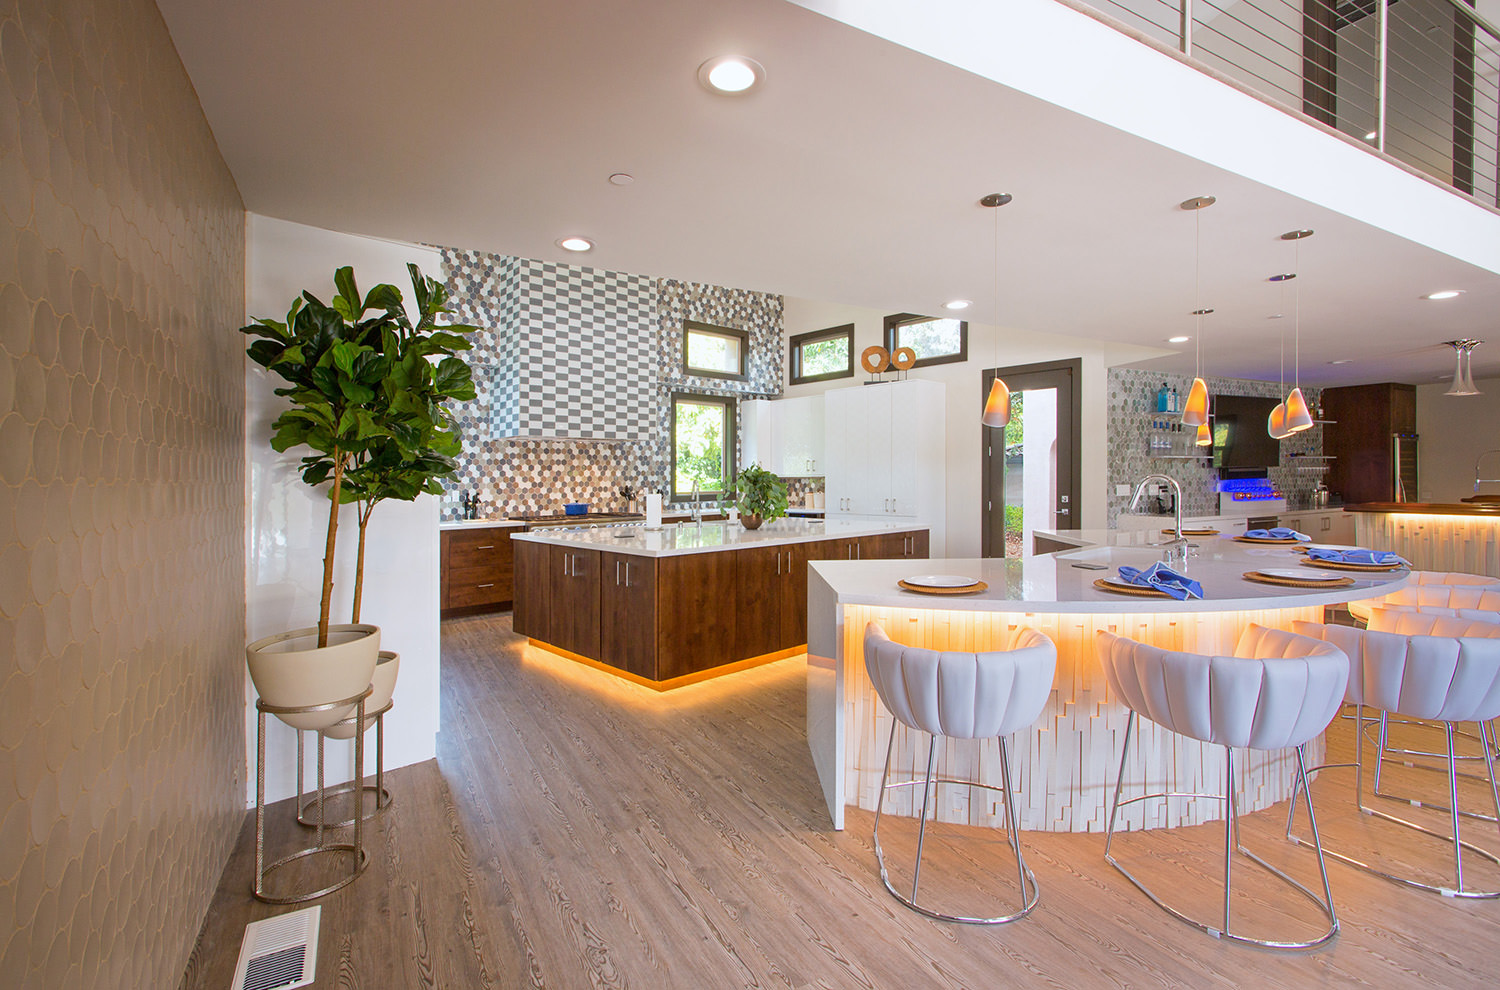 kitchen-interior-design-los-altos-california-ktj-design-co-6.jpg